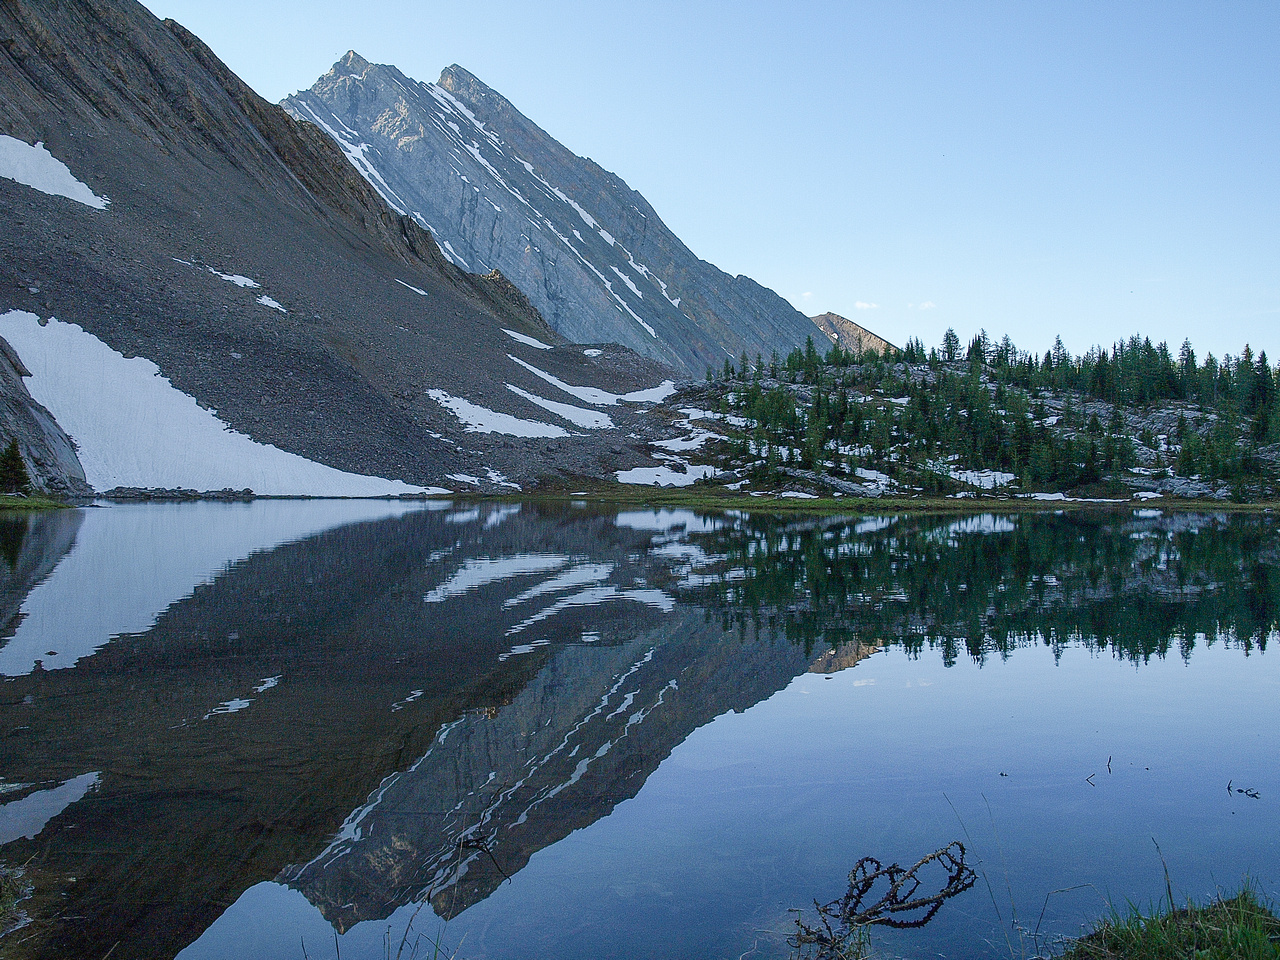 Looking back at Mount Chester and its reflection in a small tarn along the trail.